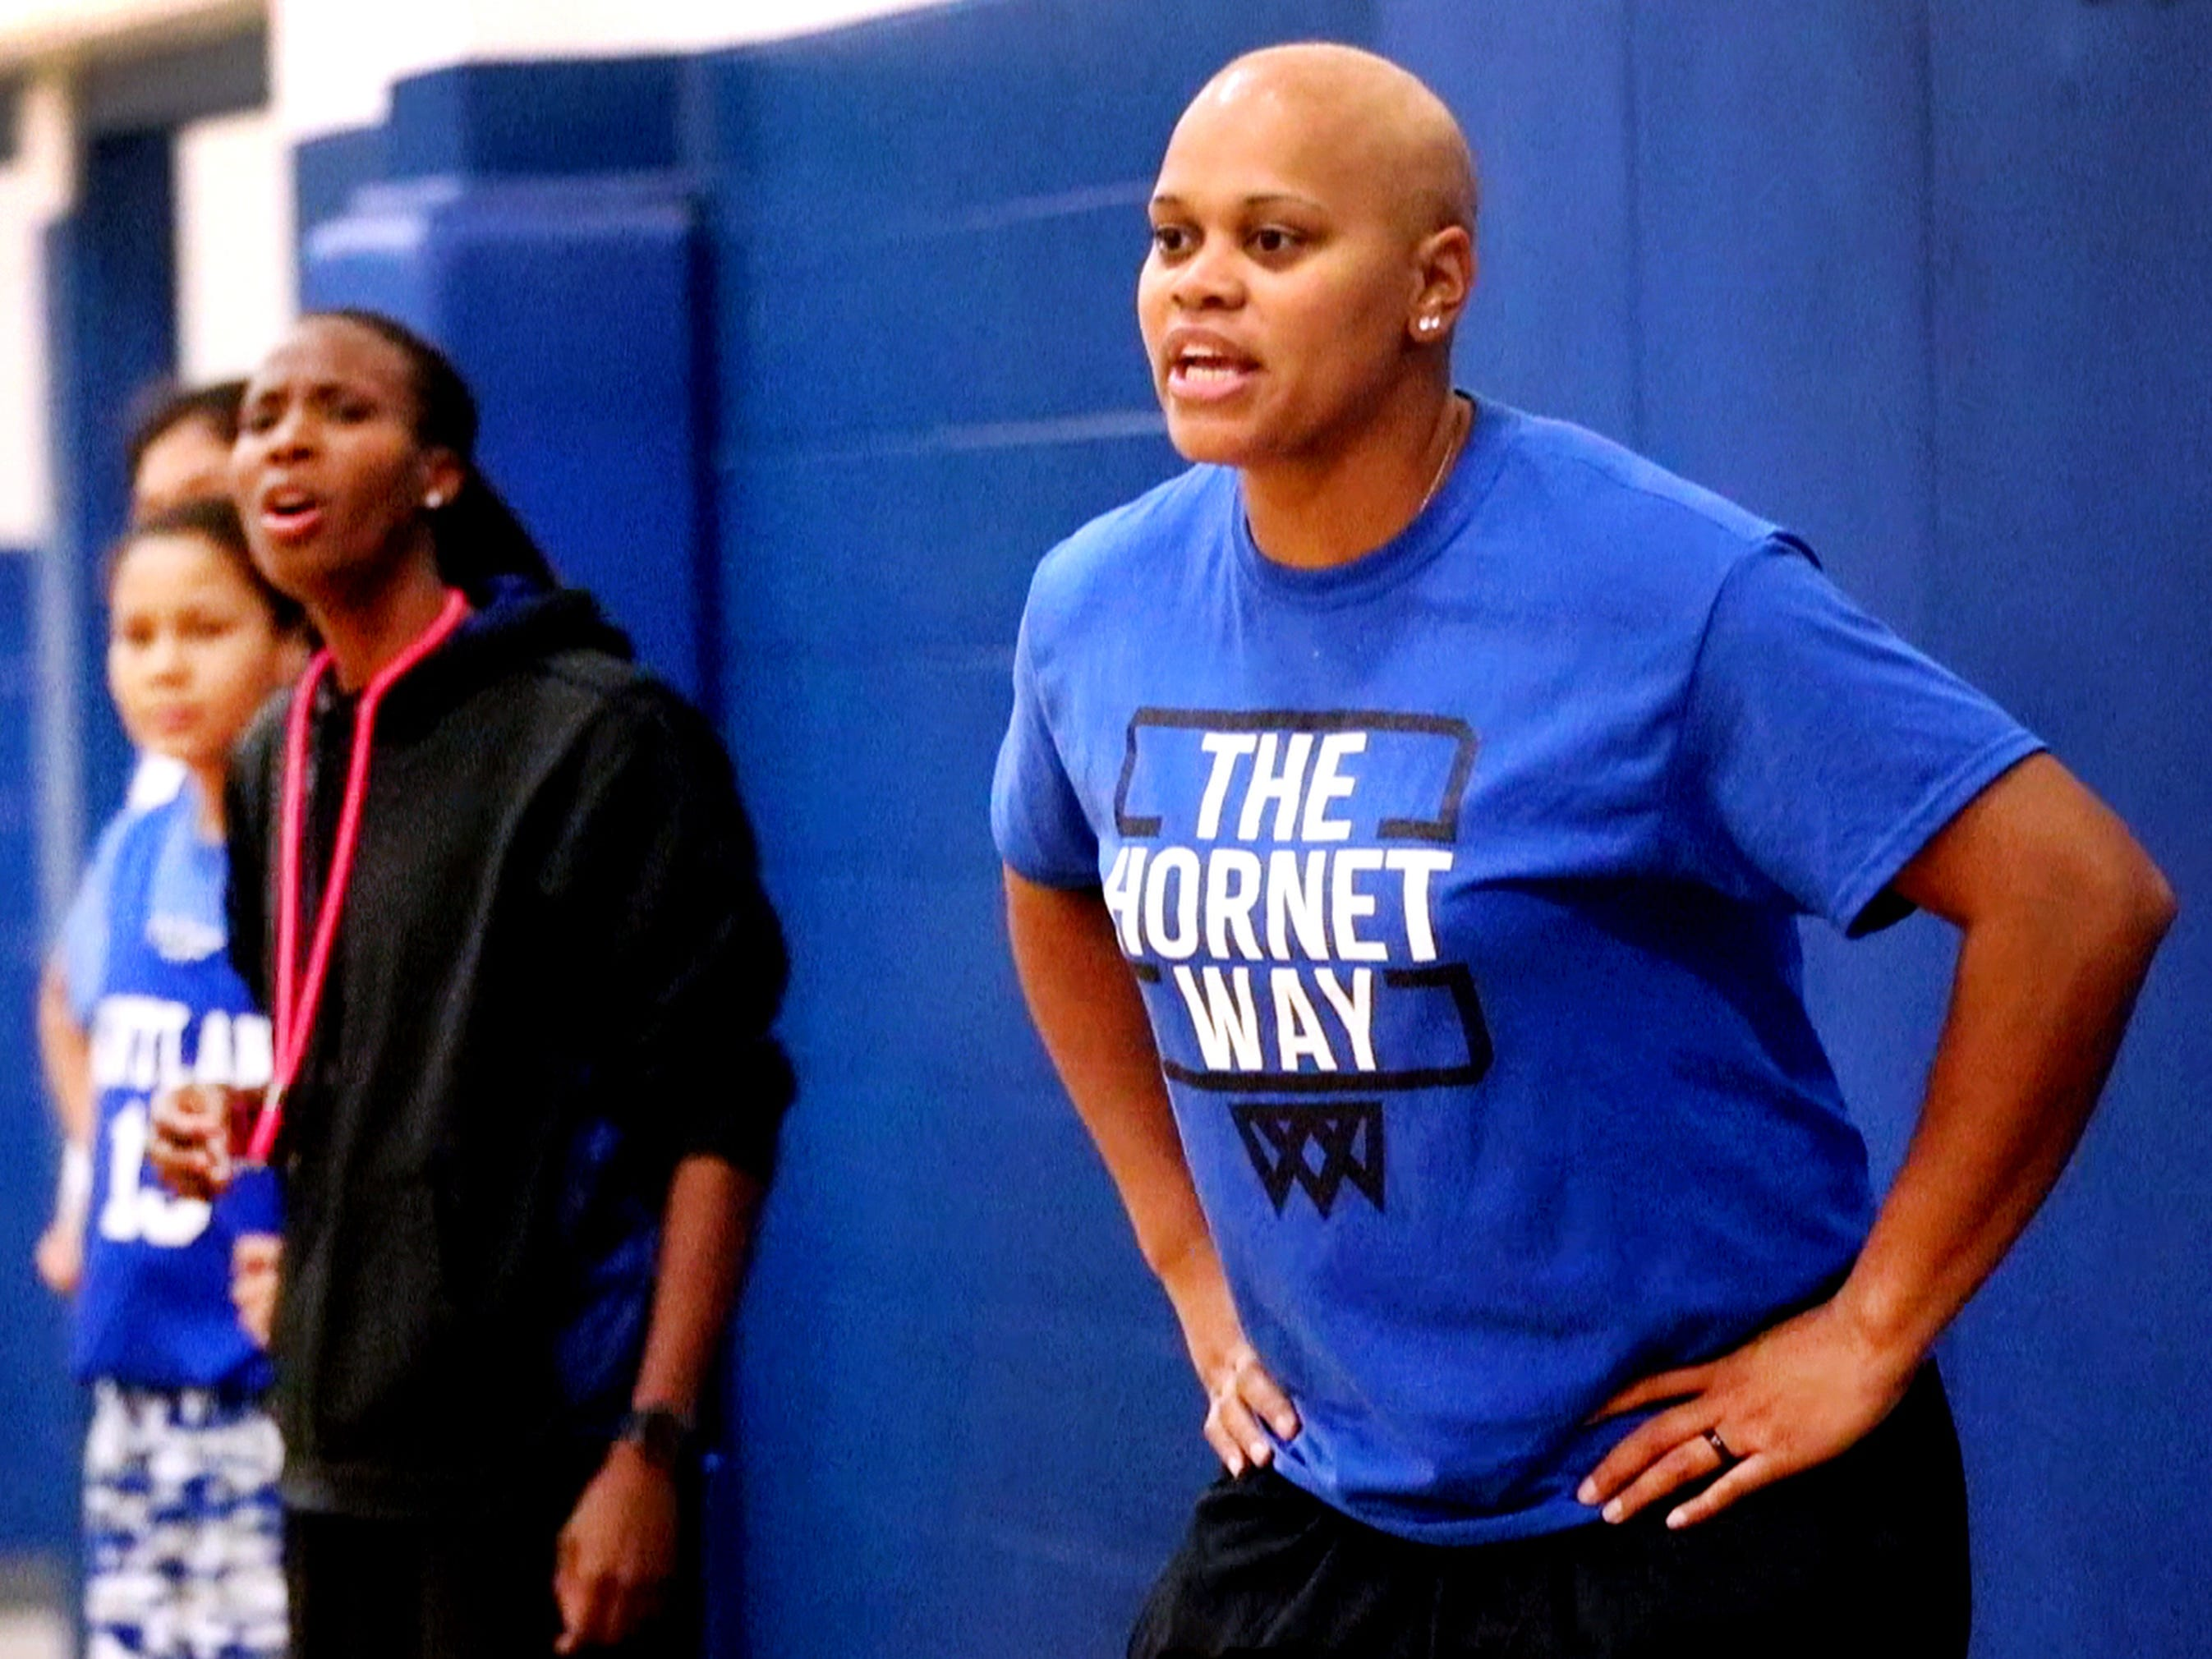 Huntland middle school girls basketball coach Tia Stovall gives instruction from the sidelines as her assistant coach and spouse Santana Seay also gives out instructions in the background, on Tuesday, Nov. 13, 2018.